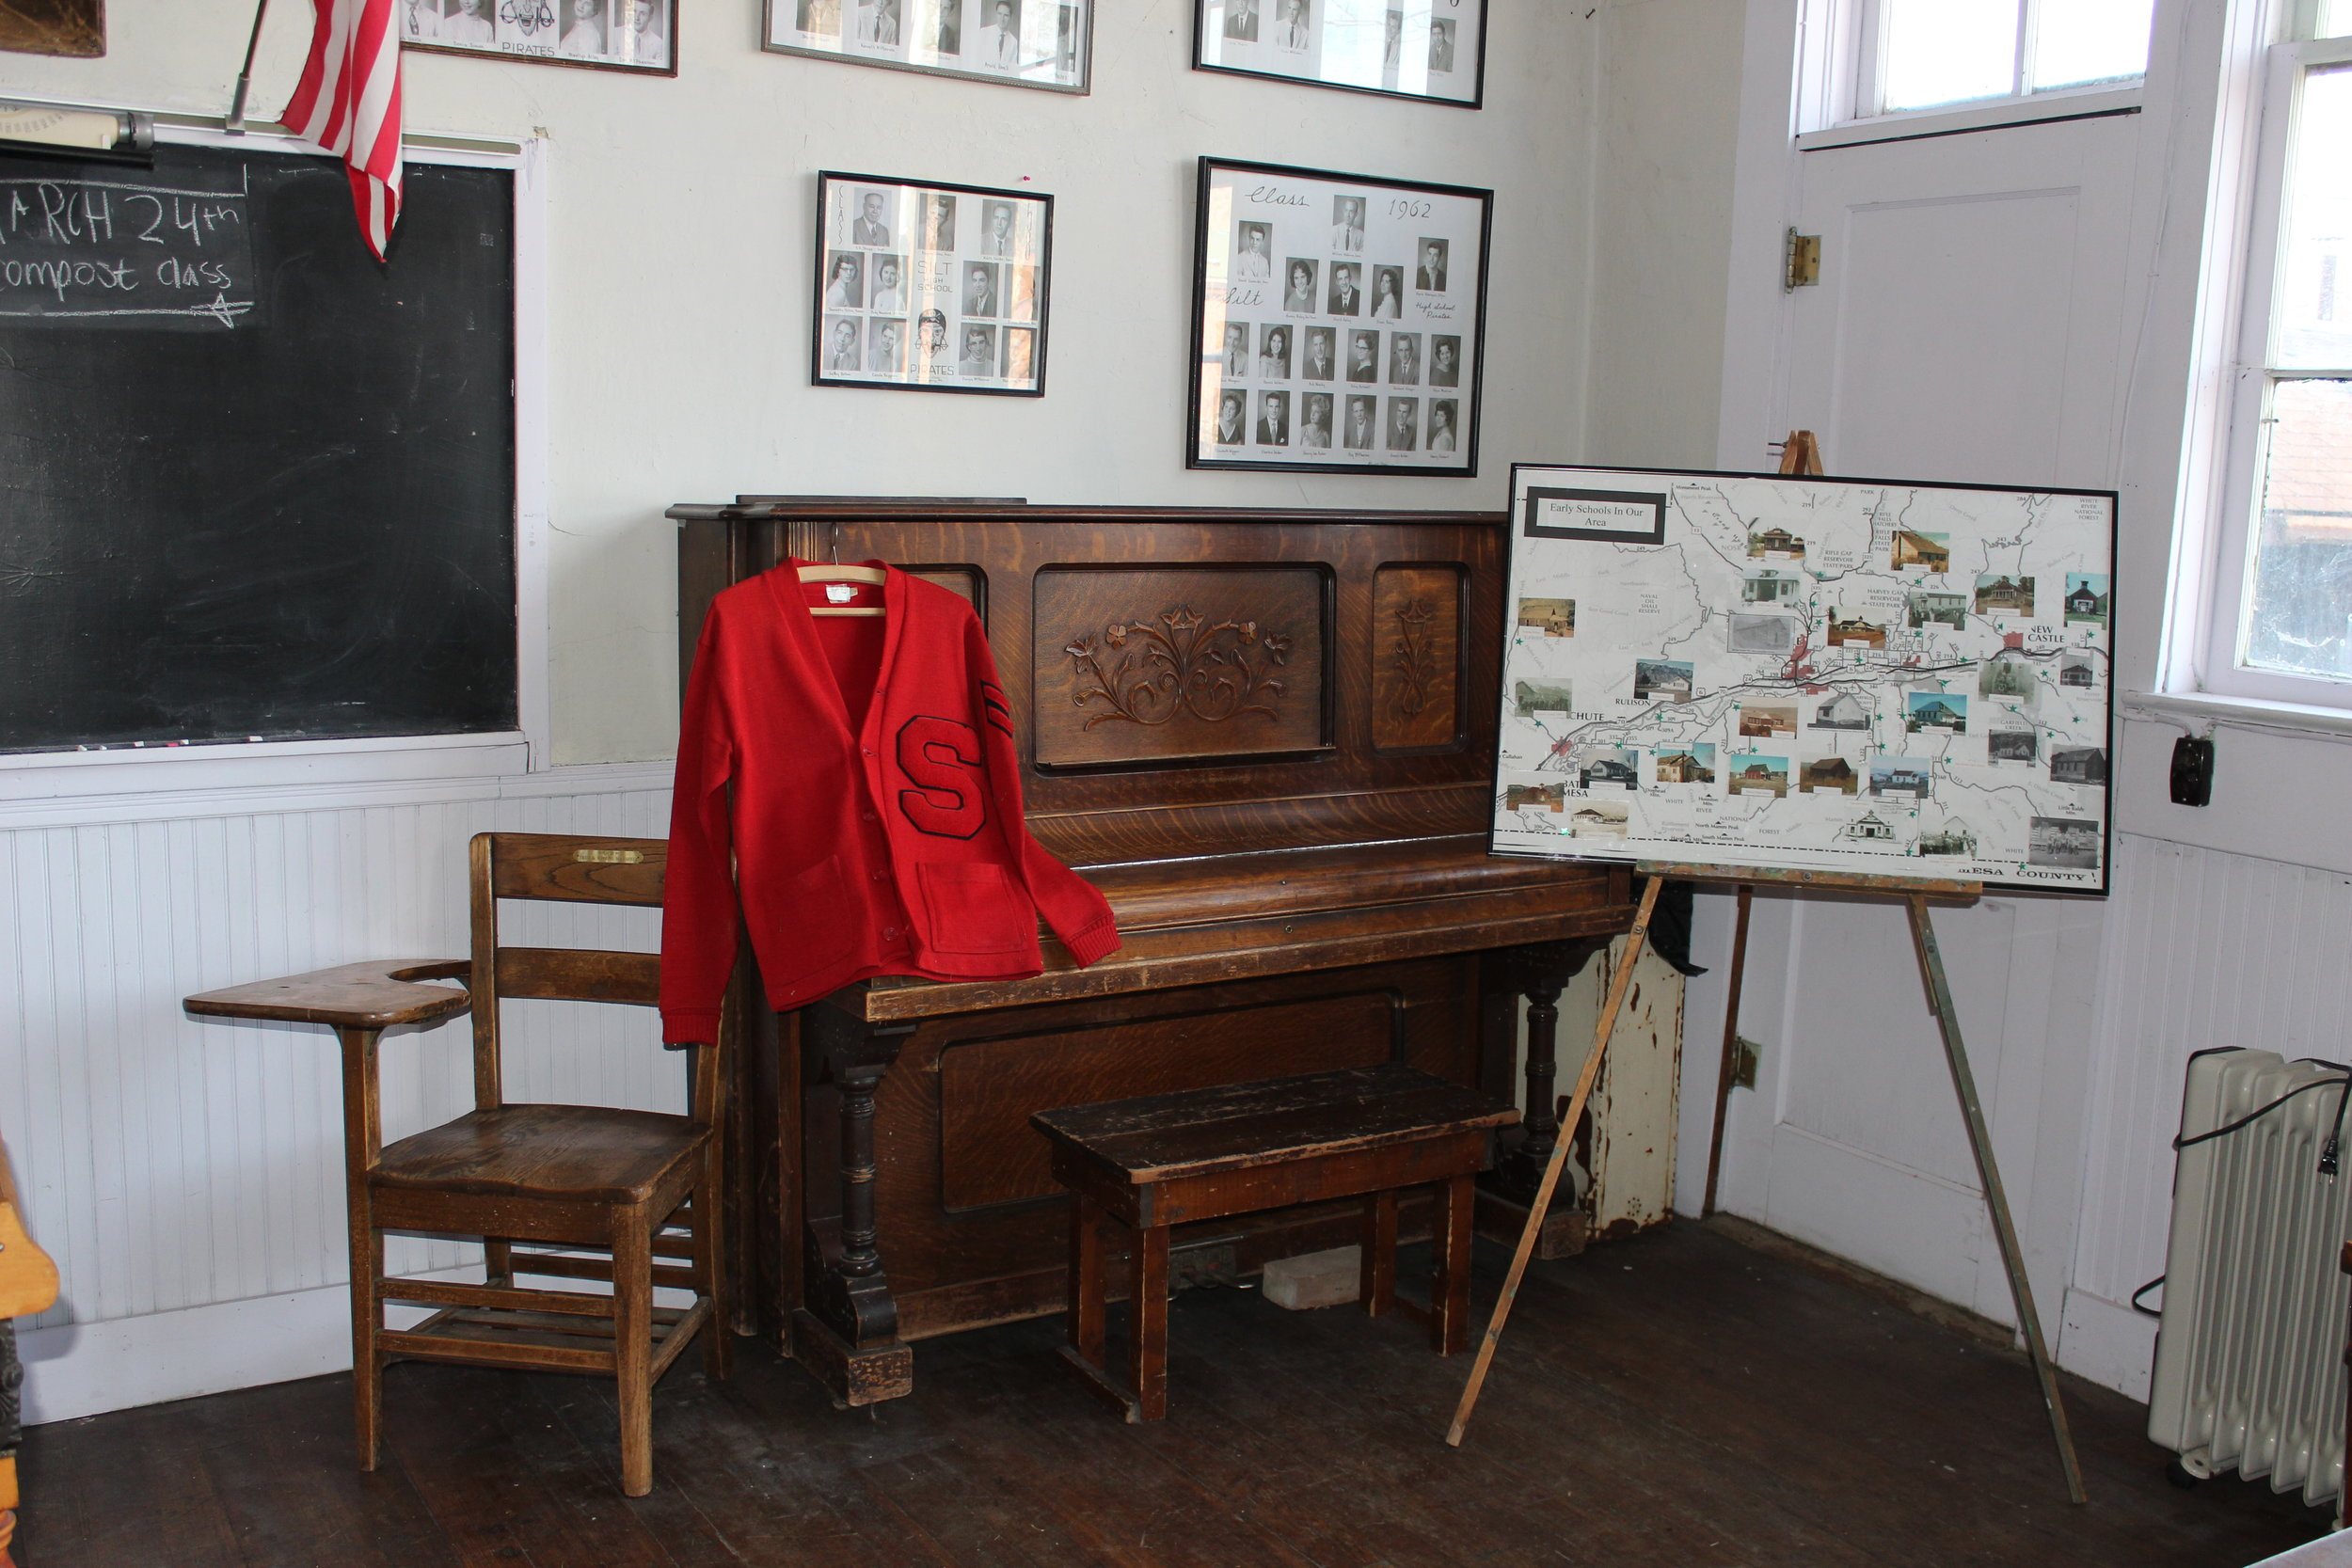 A letter jacket from Silt High School hangs on the piano in the Austin School.